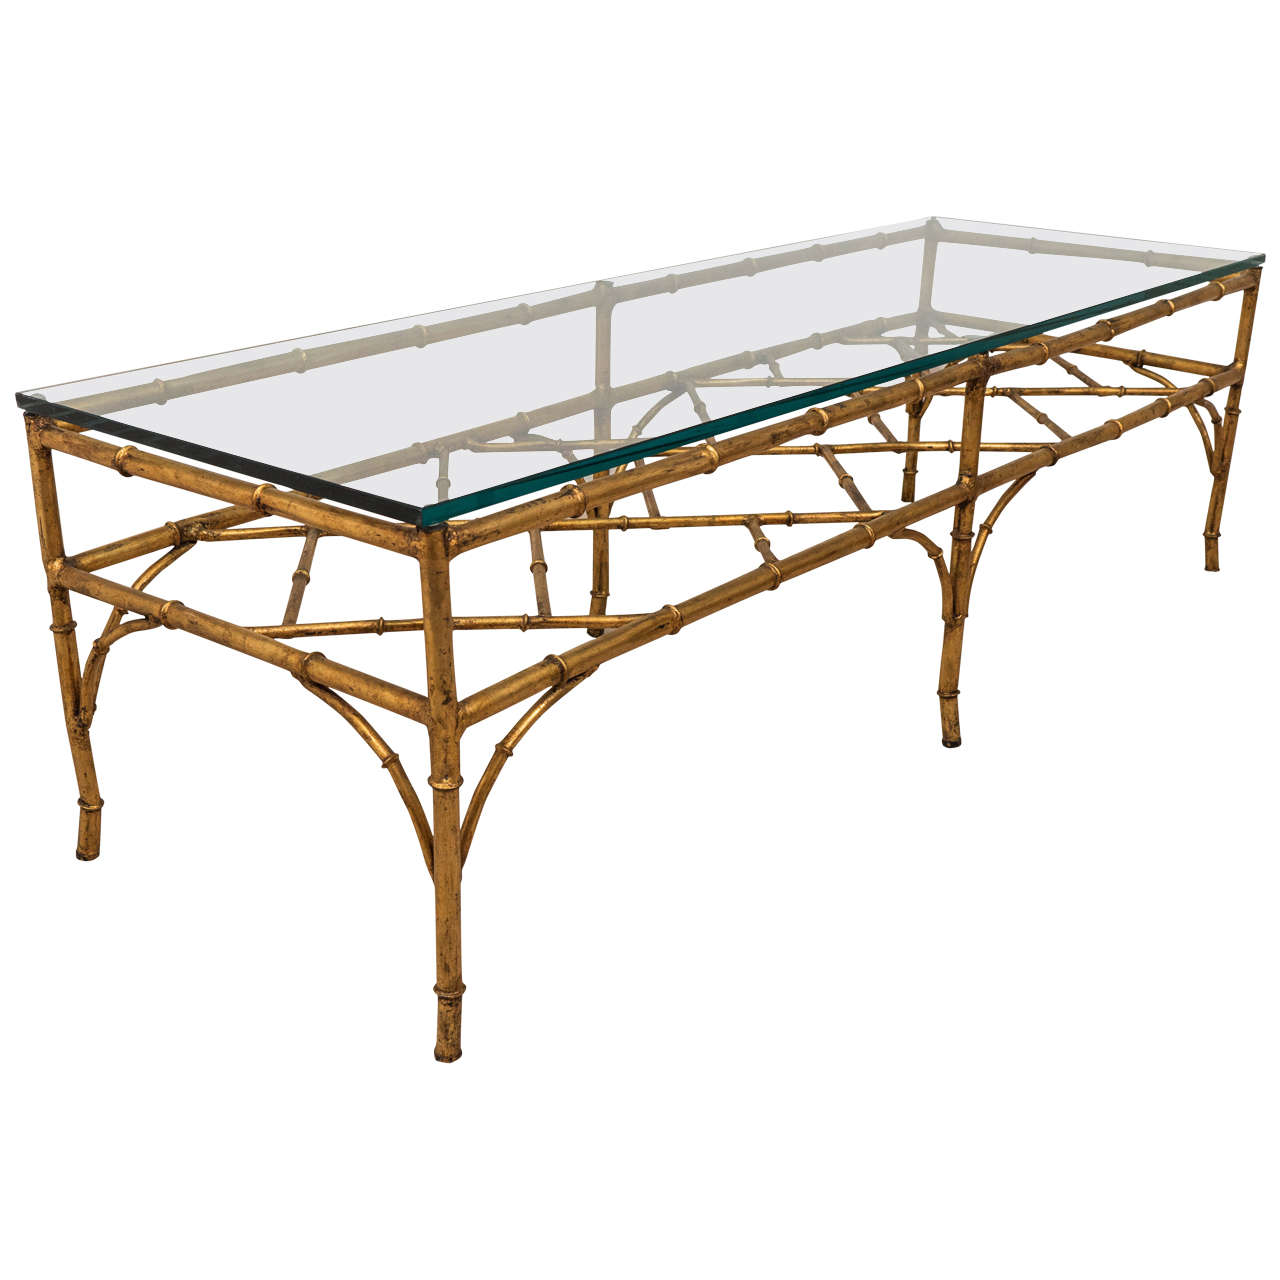 A Midcentury Faux Bamboo Gilded Metal Coffee Table With Bracket Stretcher For